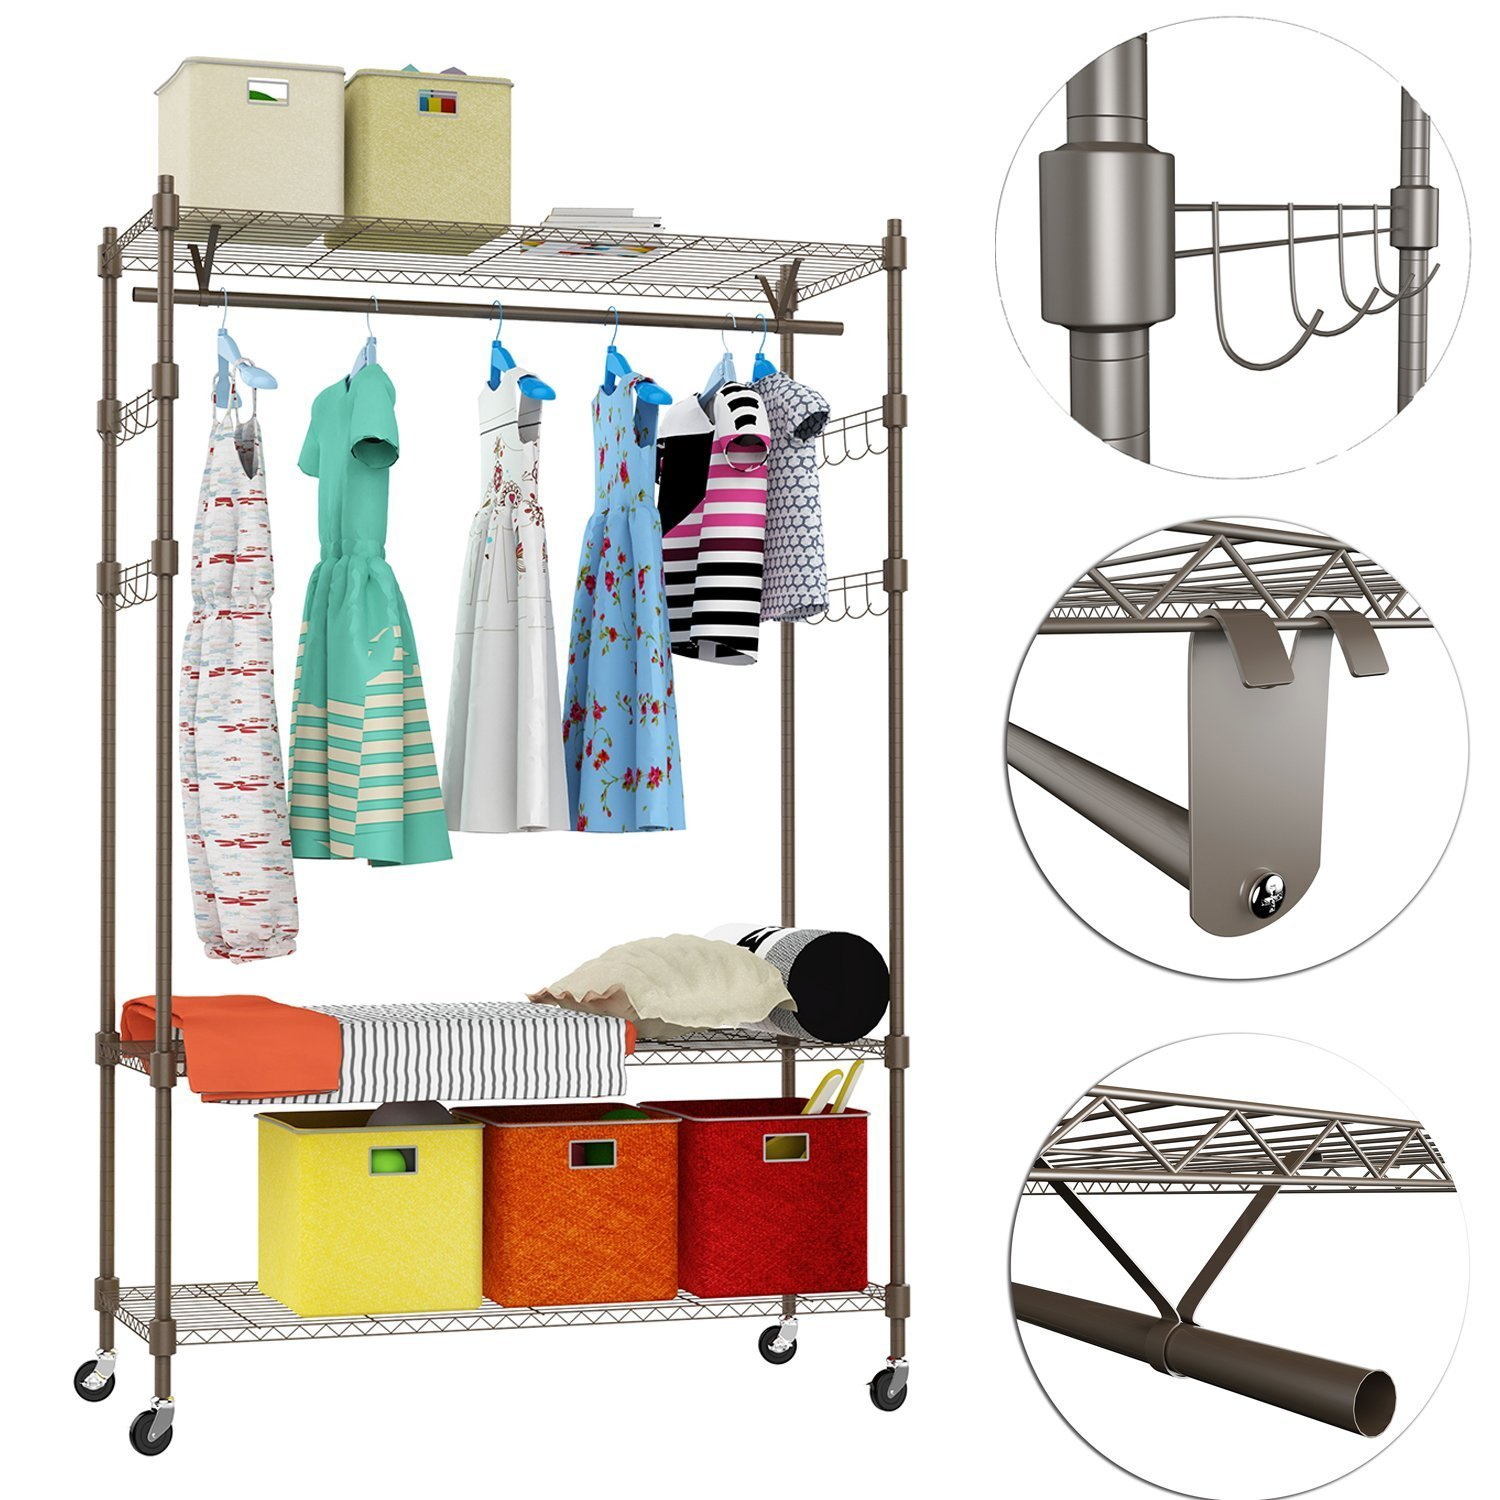 Kaluo Heavy Duty Wire Shelving Garment Rack Clothes Rack, Portable Clothes Closet Wardrobe Storage Rack Organizer with Hanging Rod